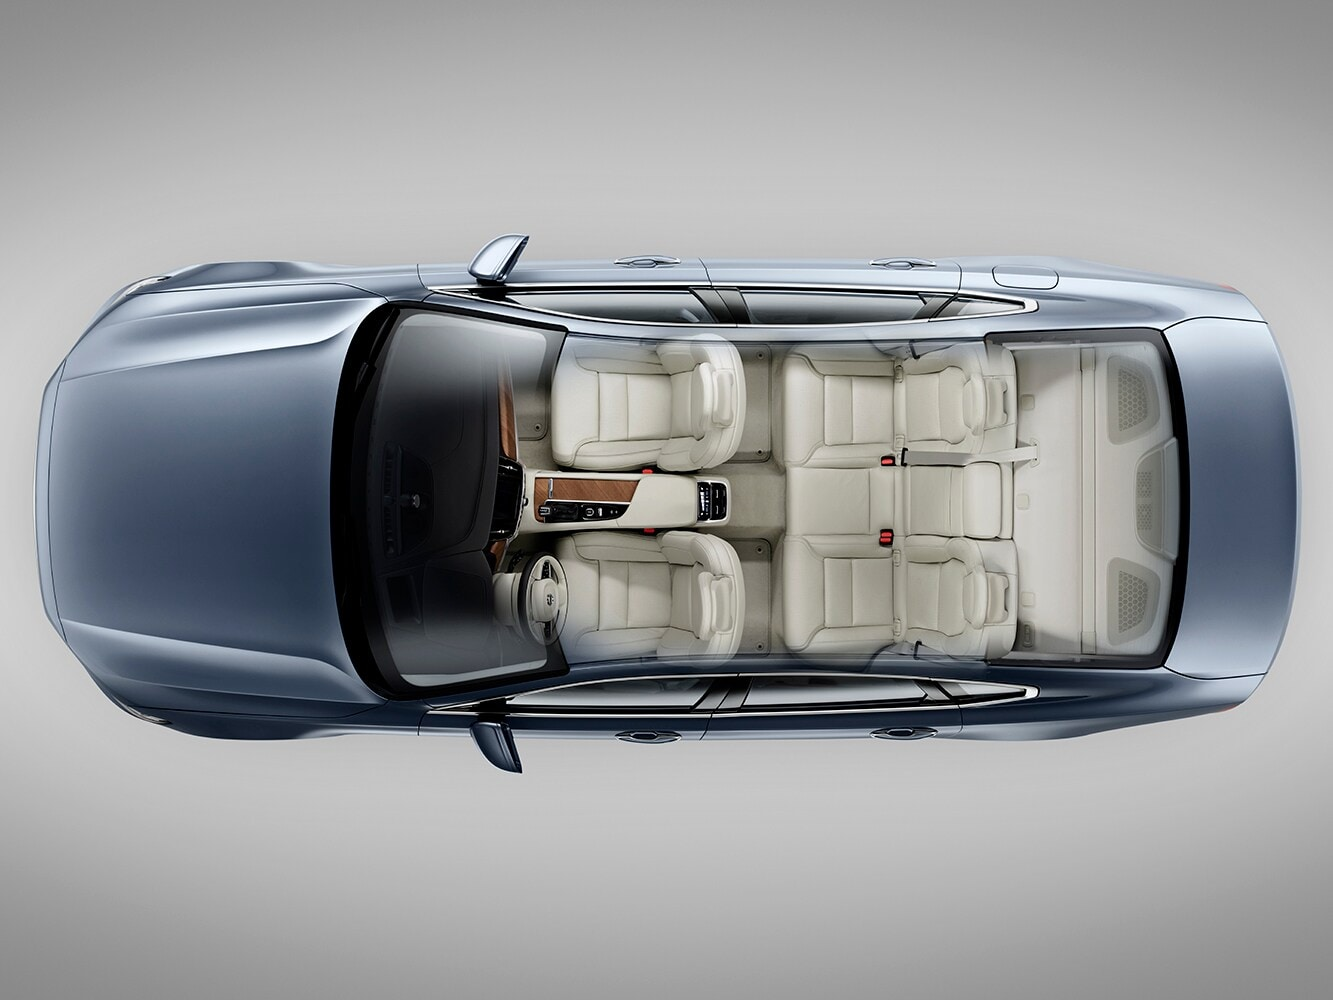 Top down cutaway view of the Volvo S90 showing the interior seat layout from above